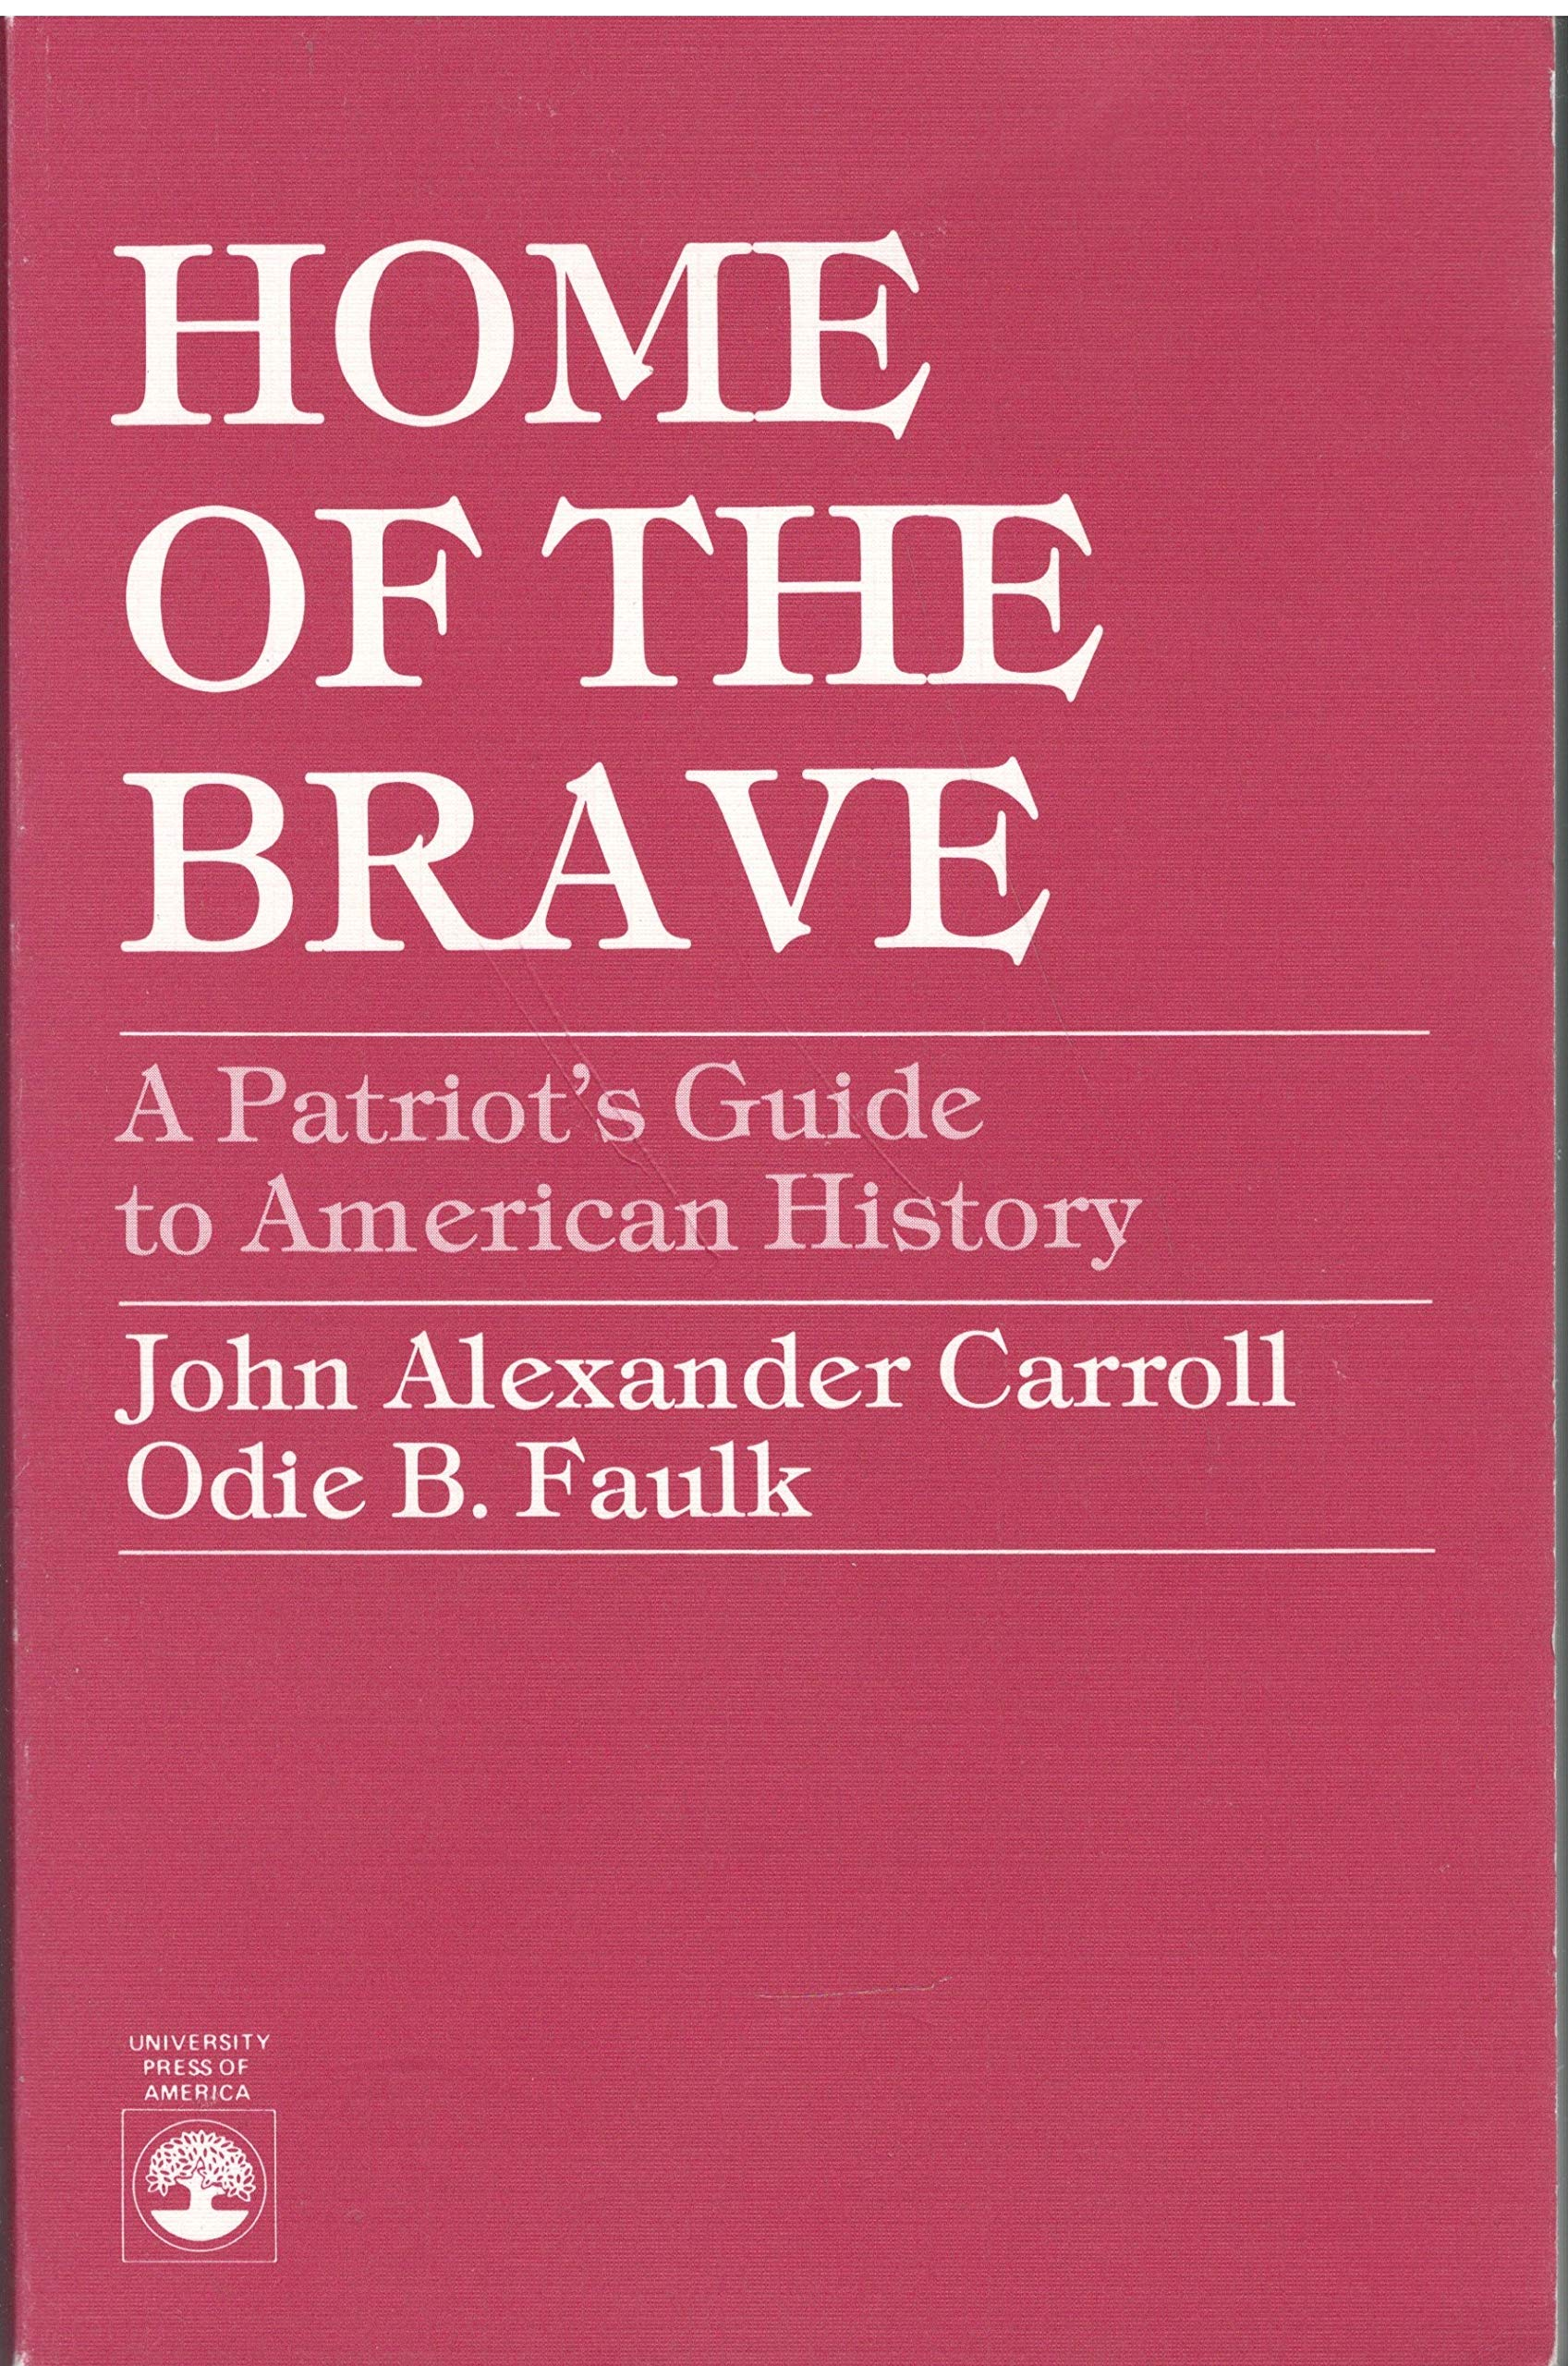 Buy Home of the Brave: Patriot's Guide to American History Book Online at  Low Prices in India | Home of the Brave: Patriot's Guide to American  History ...